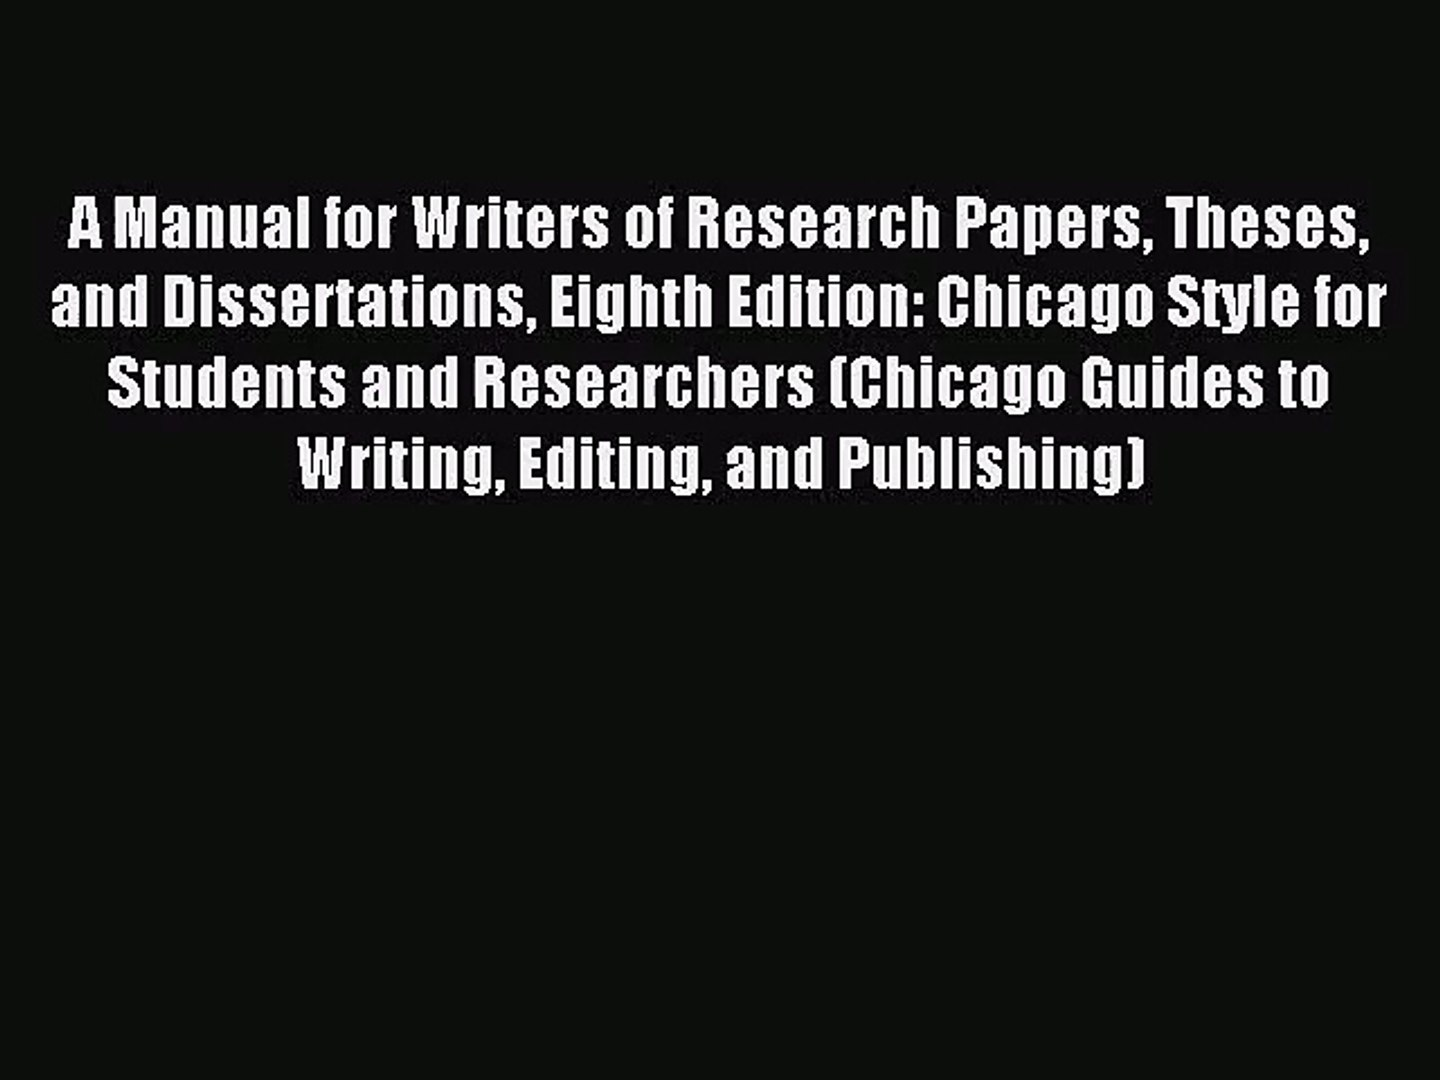 013 Manual For Writers Of Researchs Theses And Dissertations 8th Edition X1080 Xeo Staggering A Research Papers Pdf Full